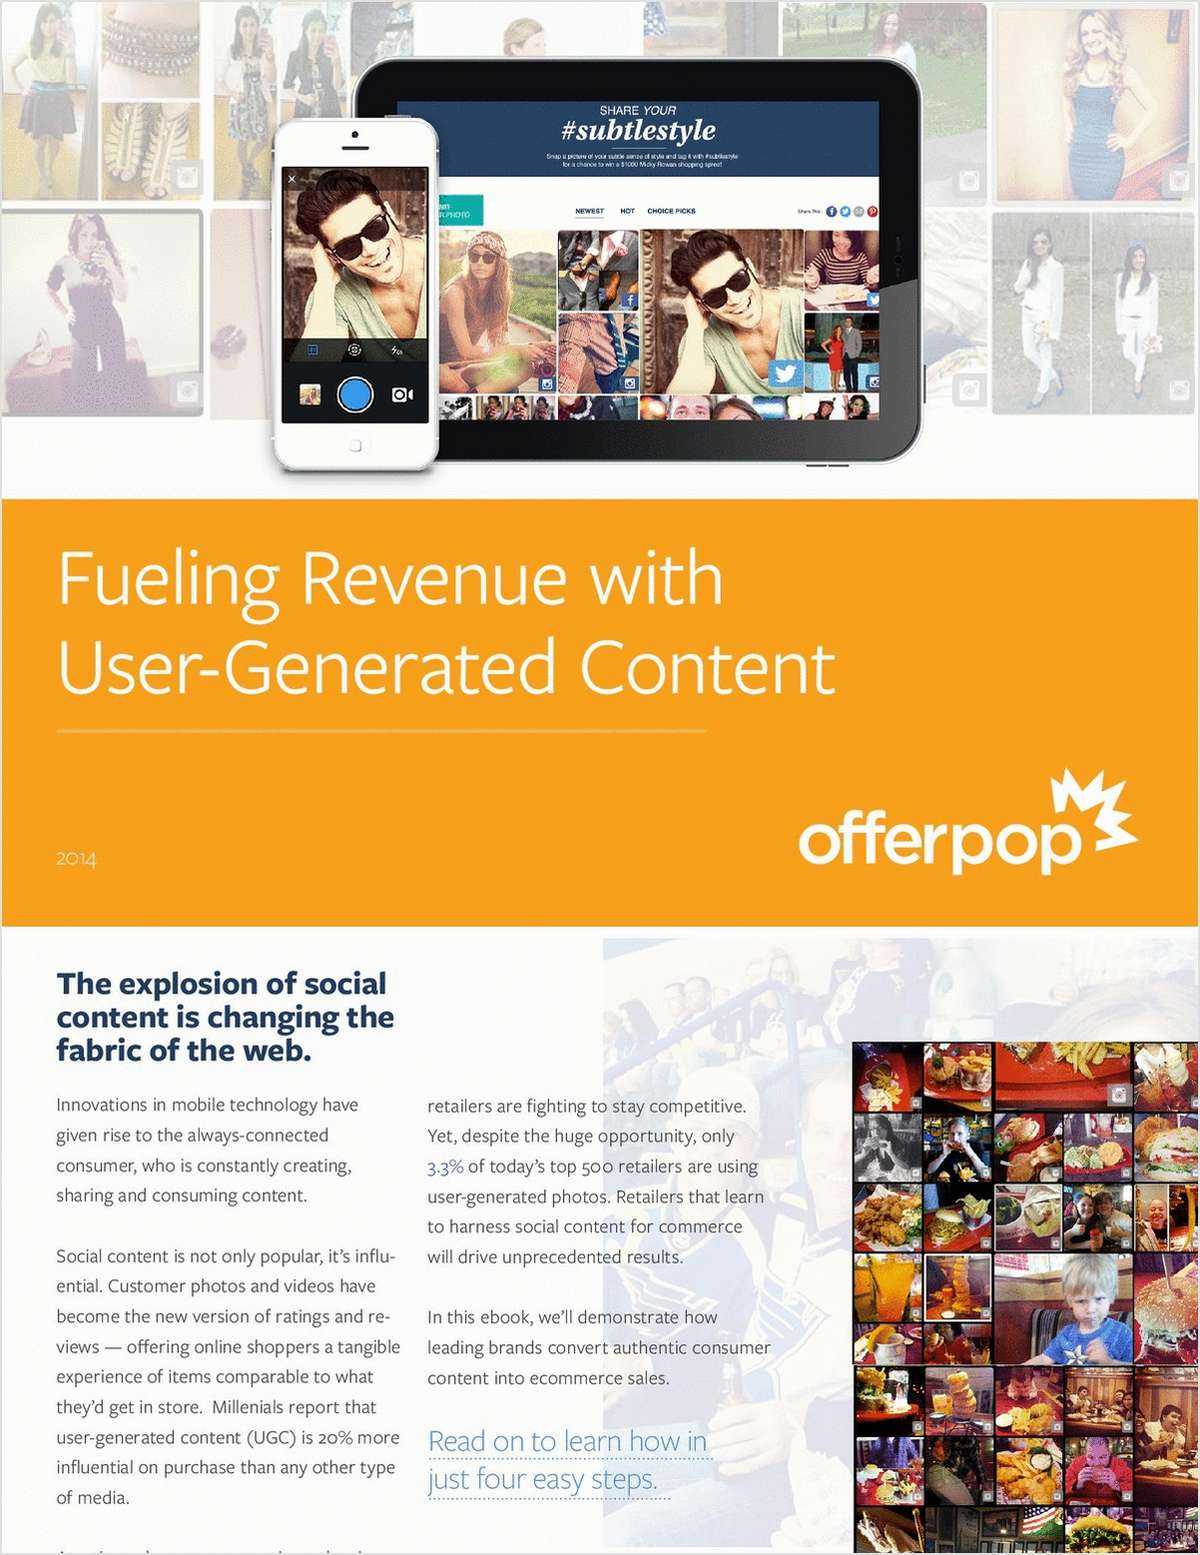 Fueling Revenue with User-Generated Content